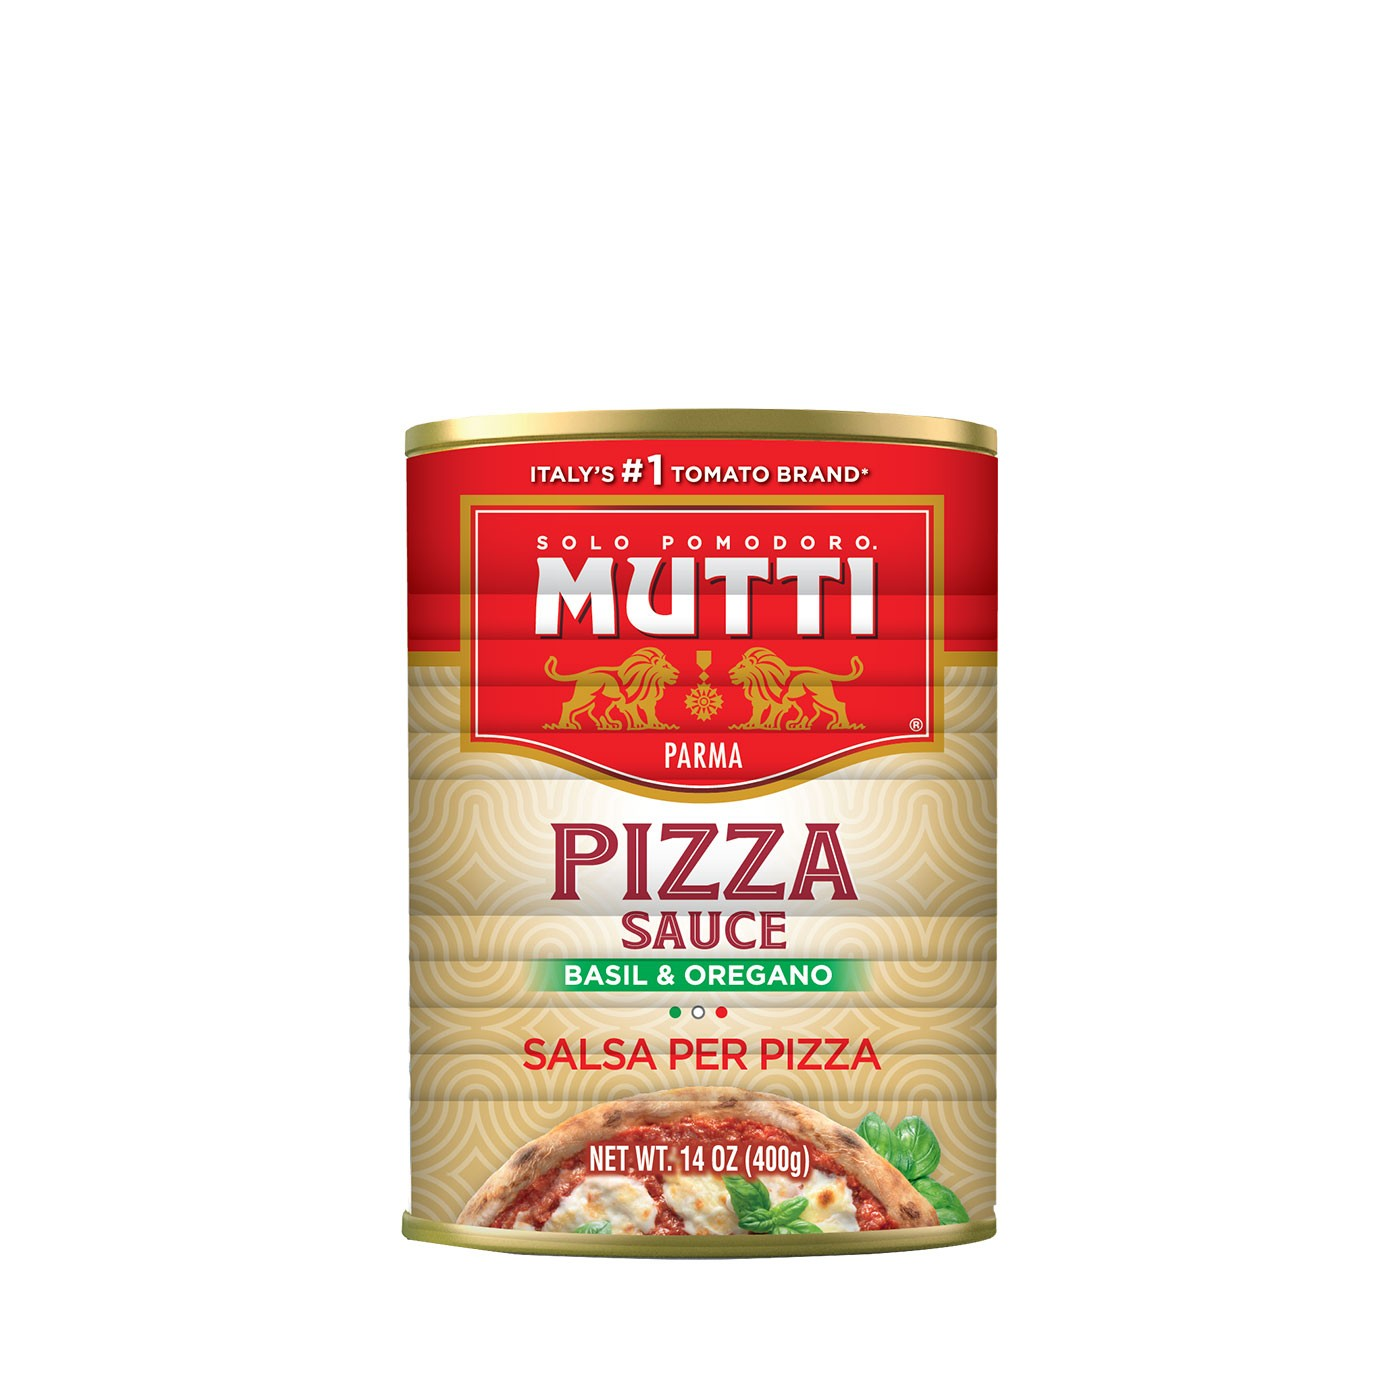 Aromatic Pizza Sauce with Spices 14 oz - Mutti | Eataly.com